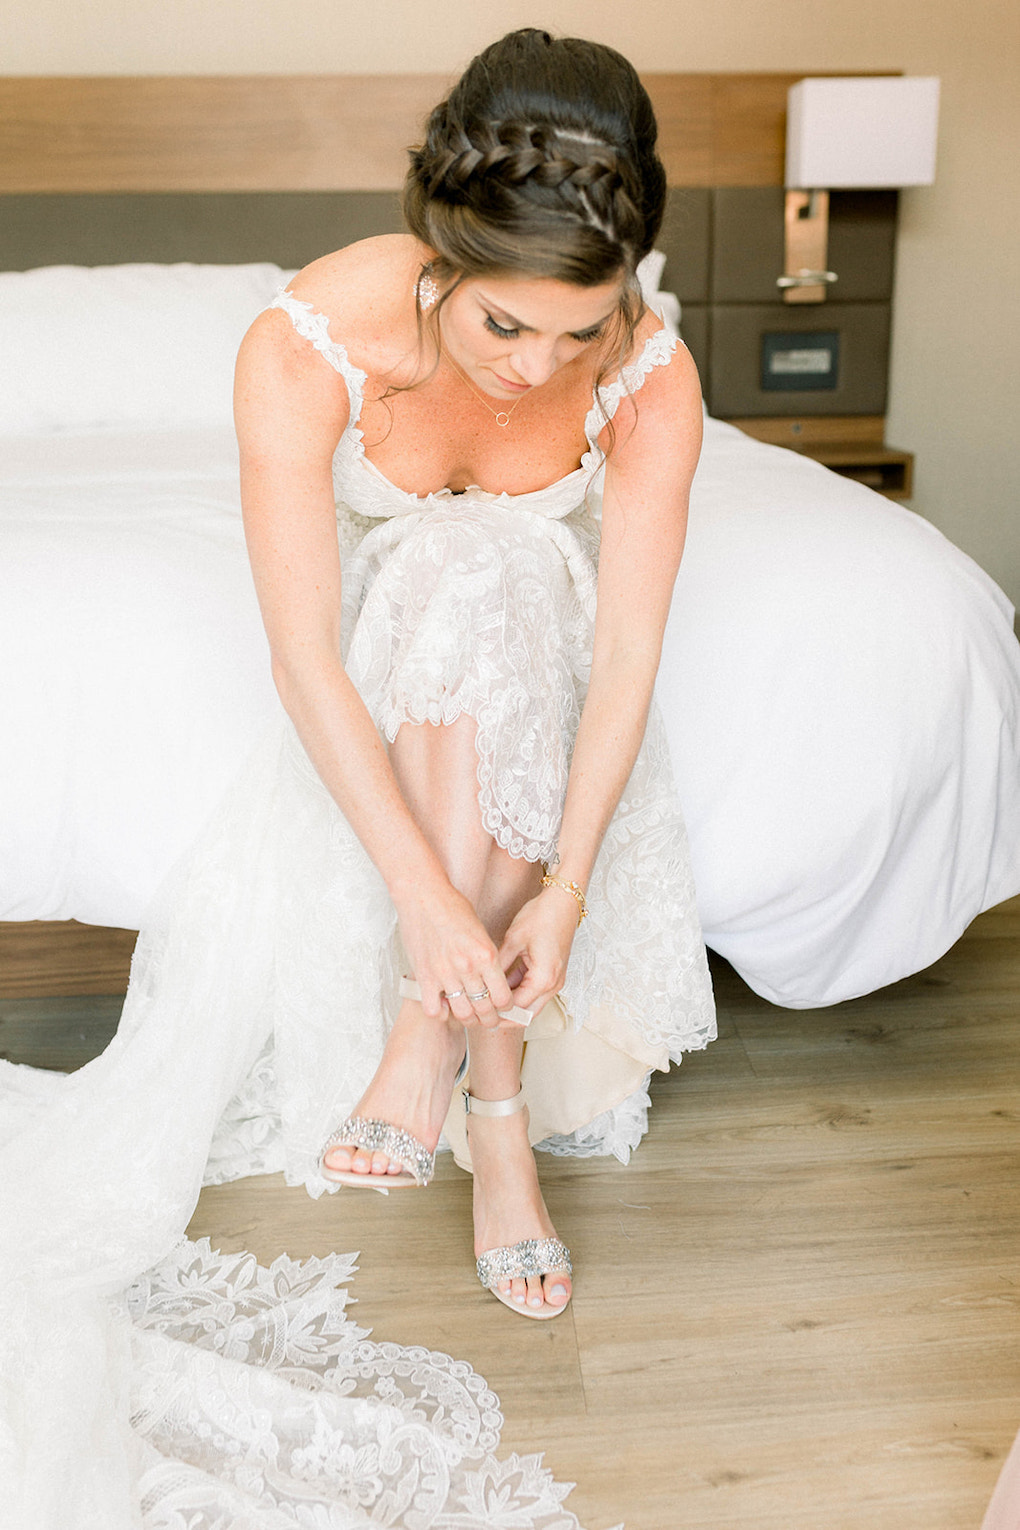 Bride getting ready shot: Pittsburgh Botanic Garden wedding planned by Exhale Events. See more wedding inspiration at exhale-events.com!